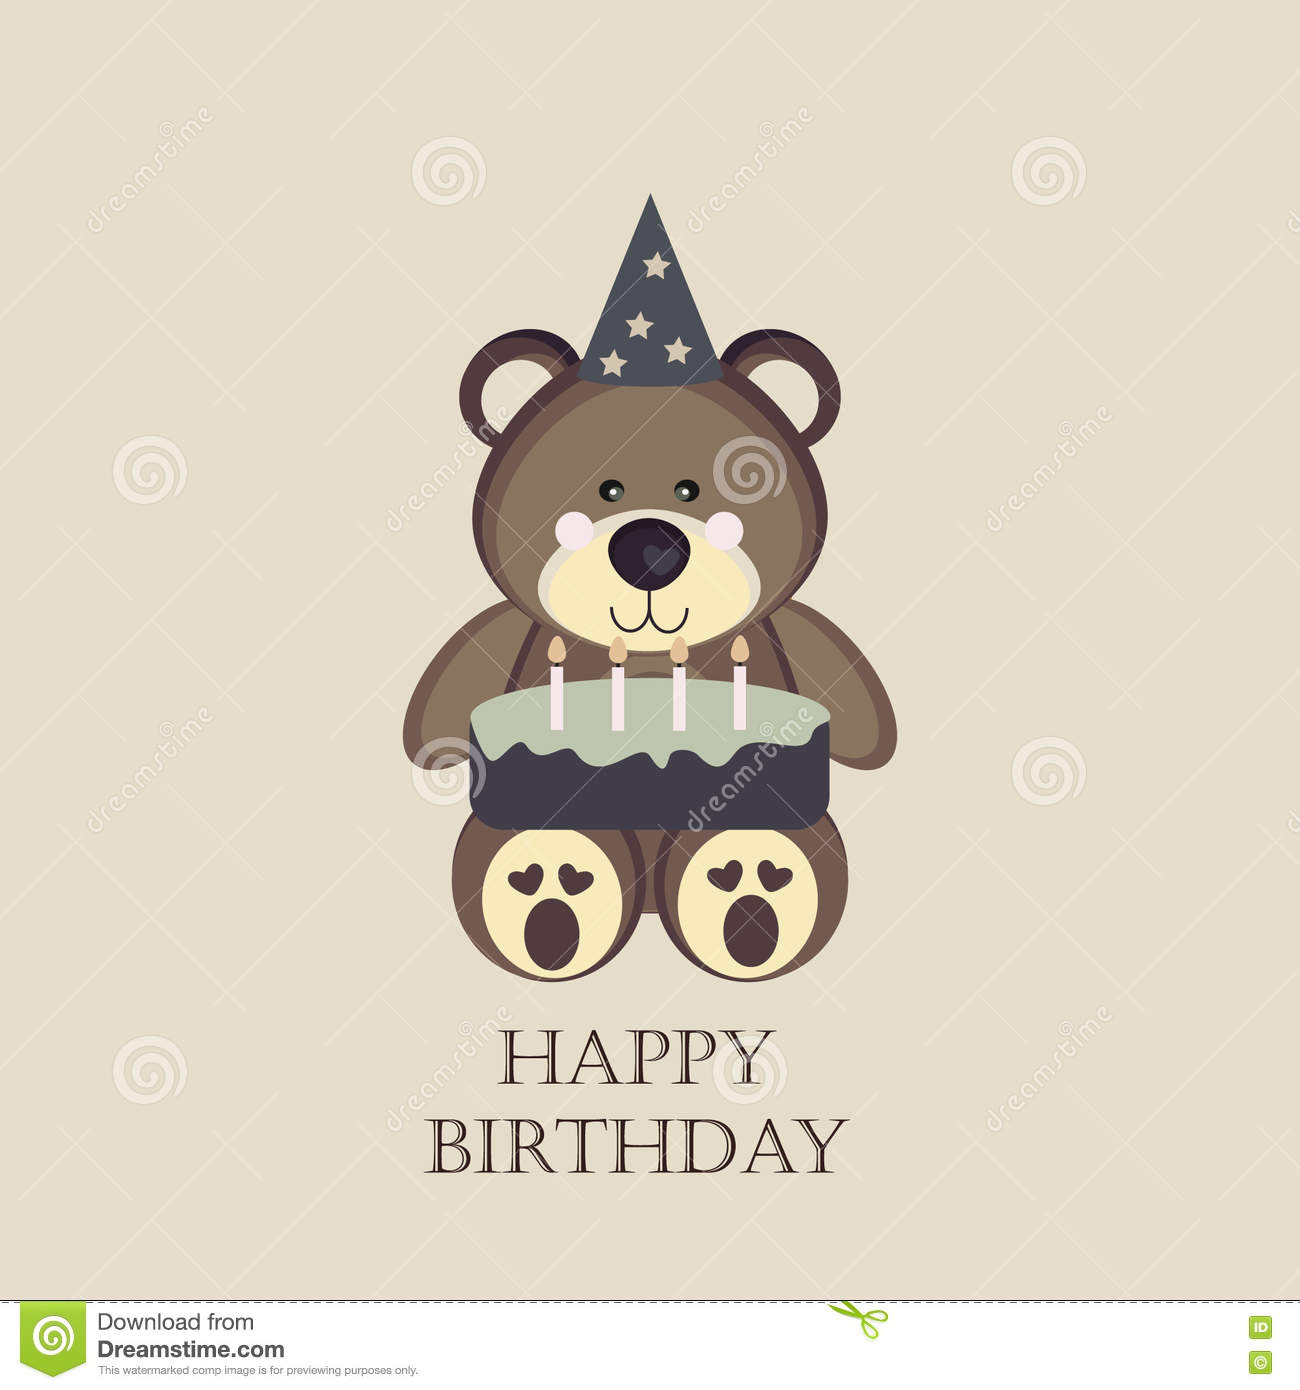 Birthday Card With Teddy Bear Stock Illustration